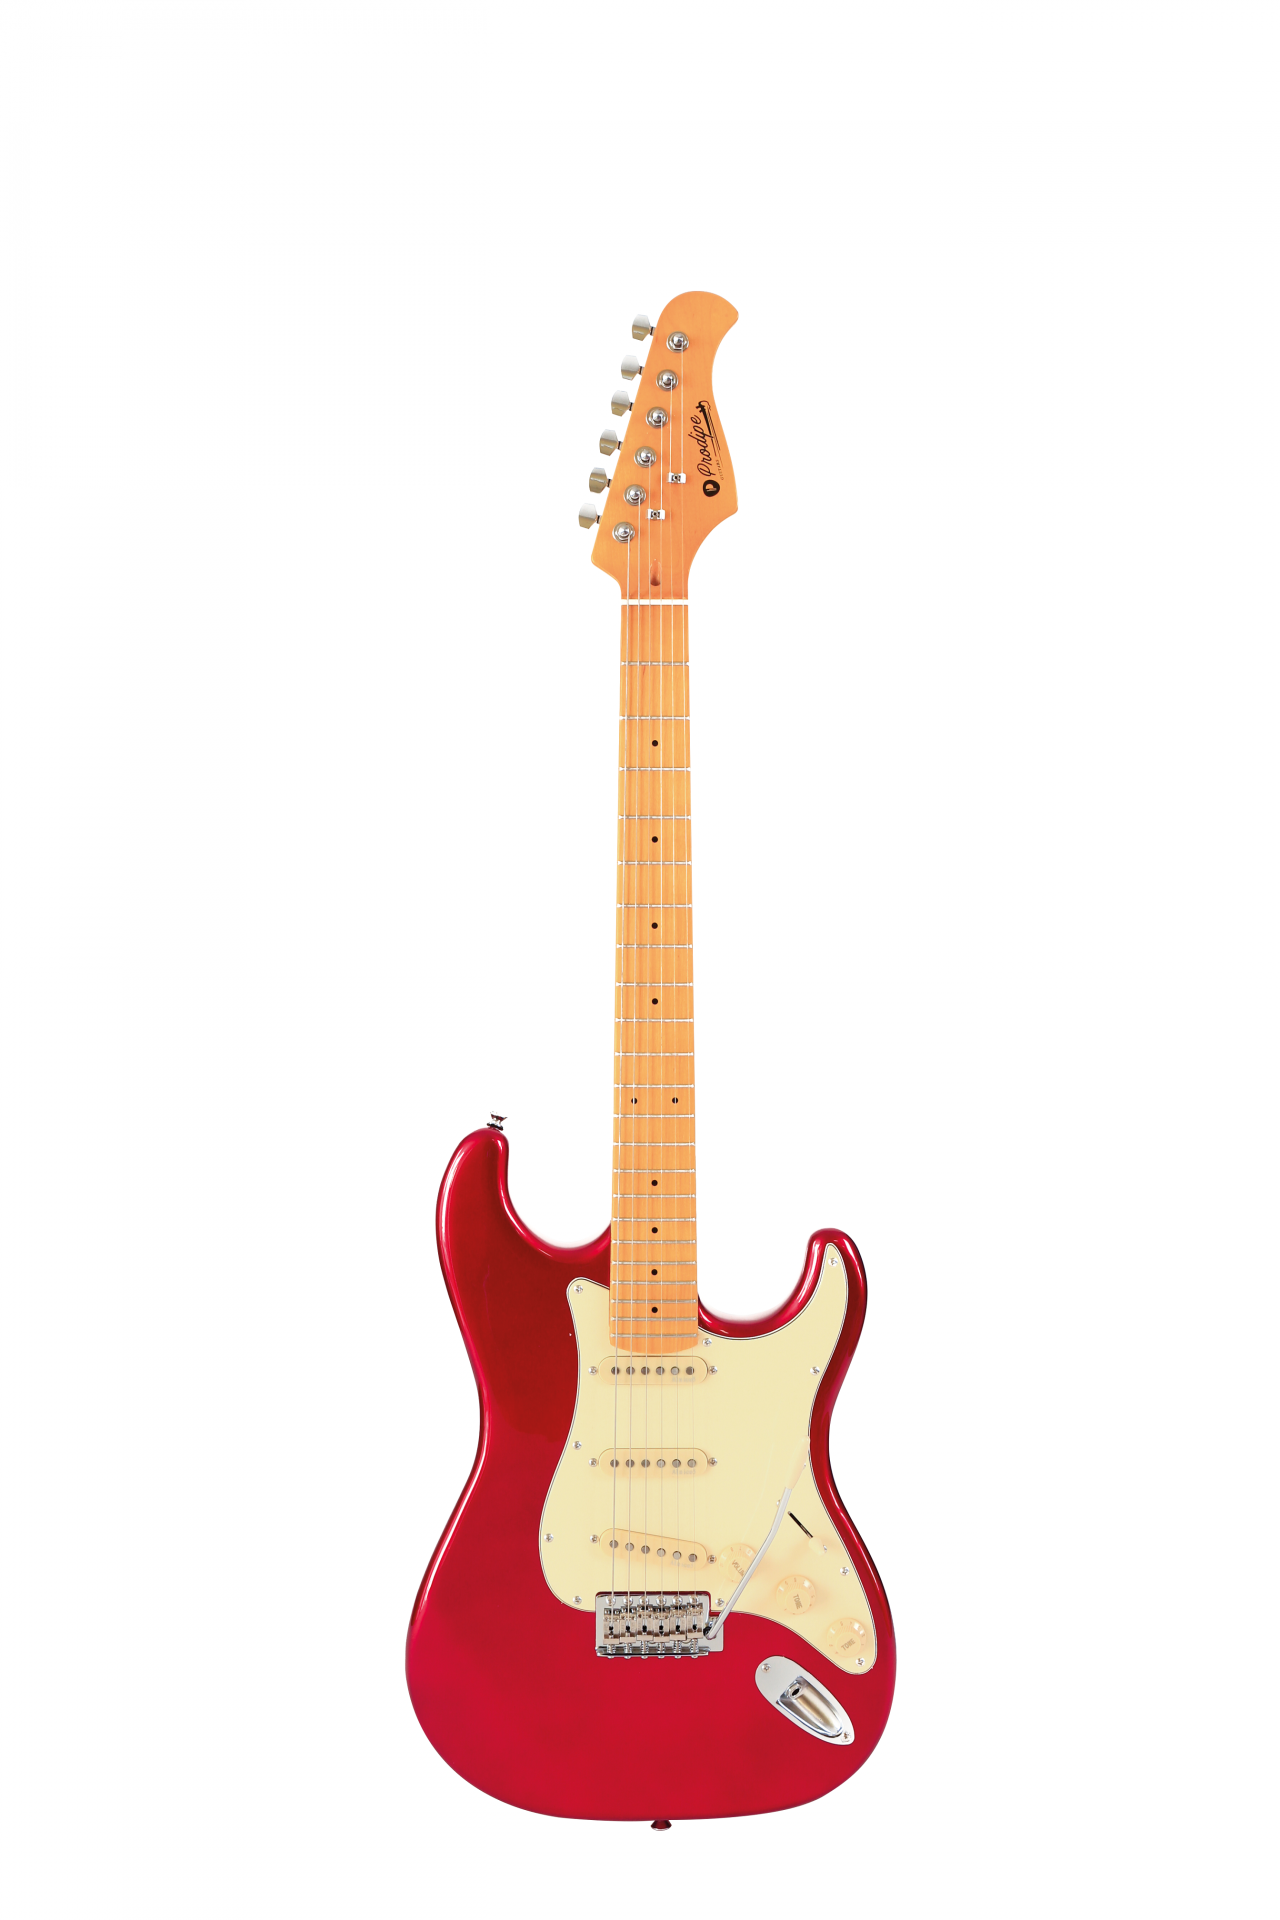 Prodipe guitars st80macandy red face